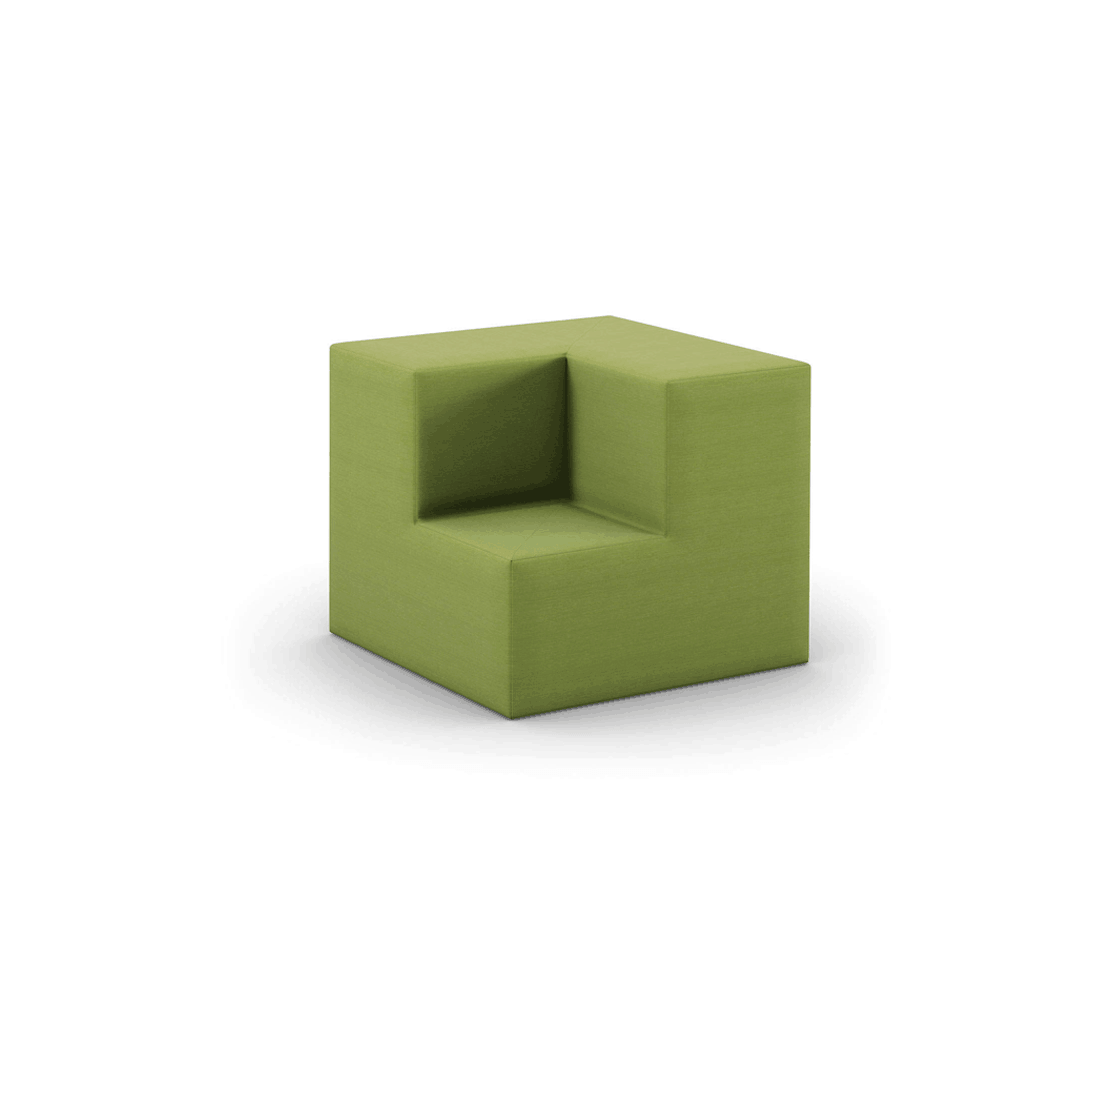 HPFI Flex Corner Unit lounge seating